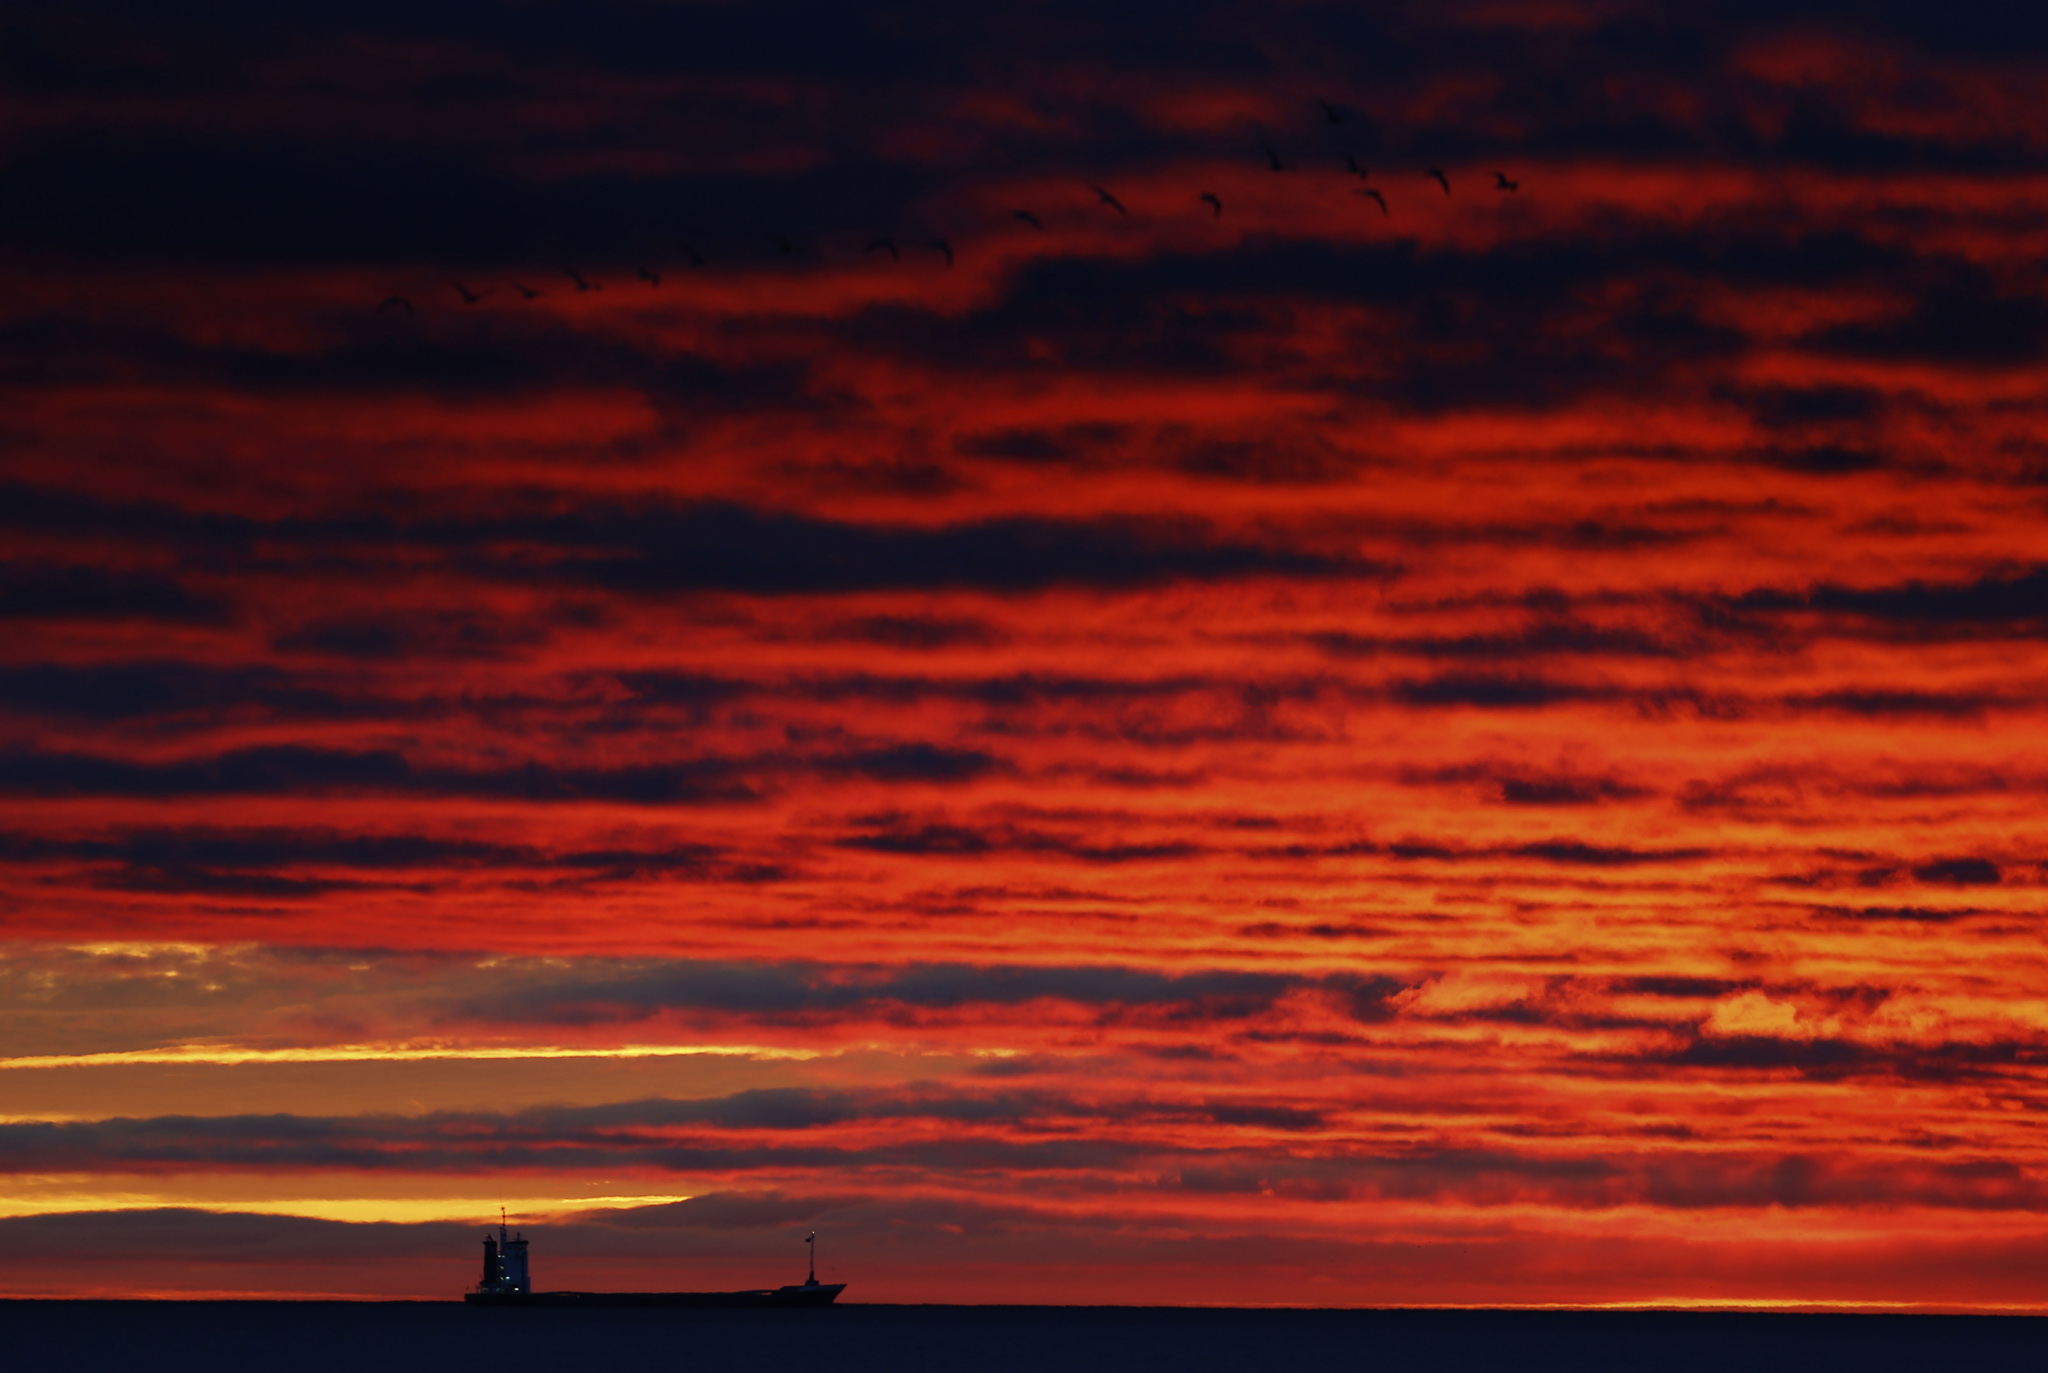 Autumn weather Nov 11th 2015...The sun rises over the North Sea off Whitley Bay, Tyne and Wear as a ship passes on the horizon. PRESS ASSOCIATION Photo. Picture date: Wednesday November 11, 2015. Photo credit should read: Owen Humphreys/PA Wire